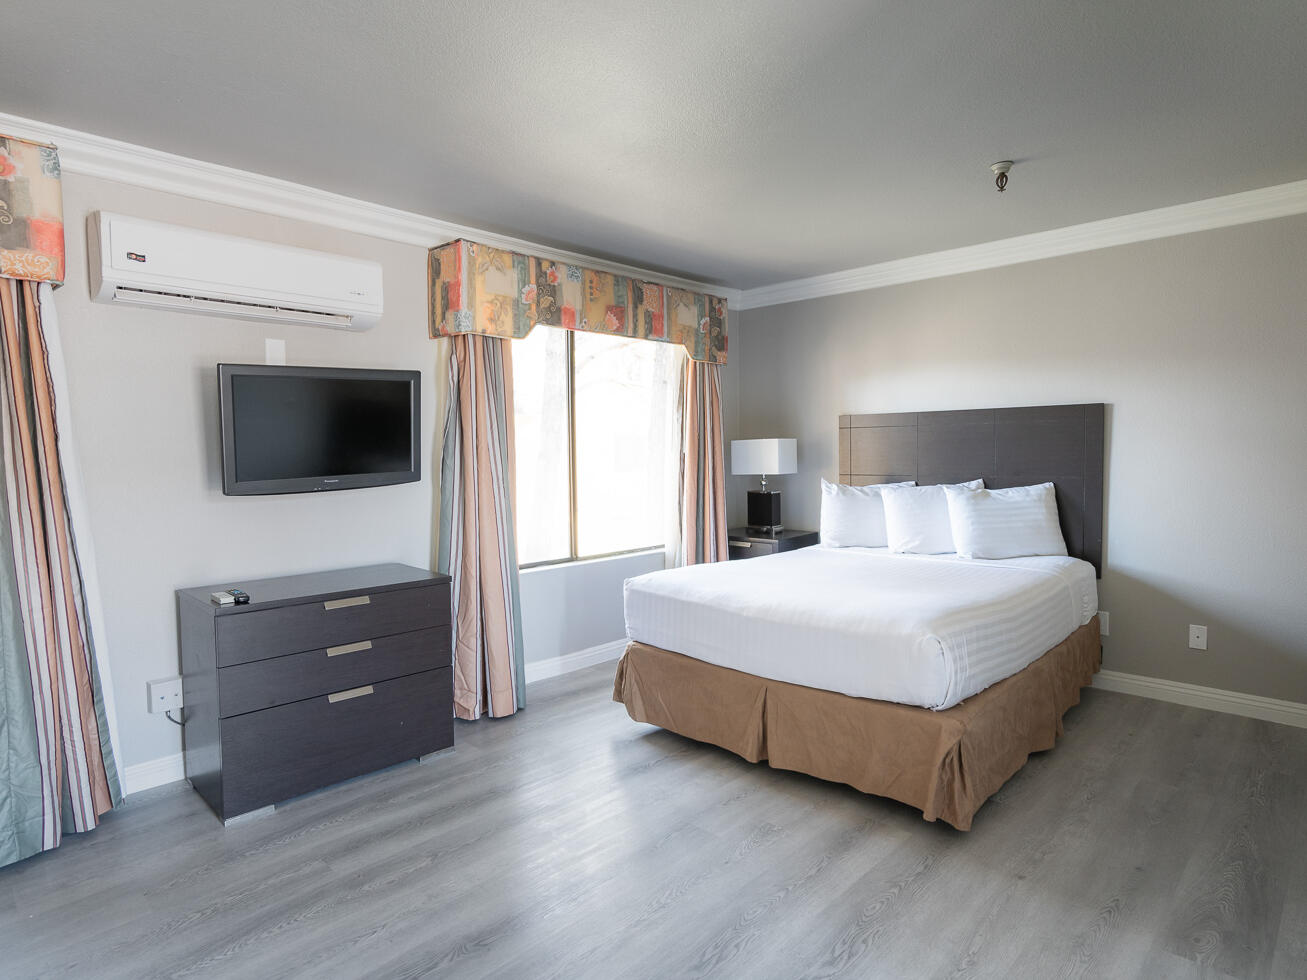 Extended Stay Studio Suite Queen Bed at the Alexis Park Resort